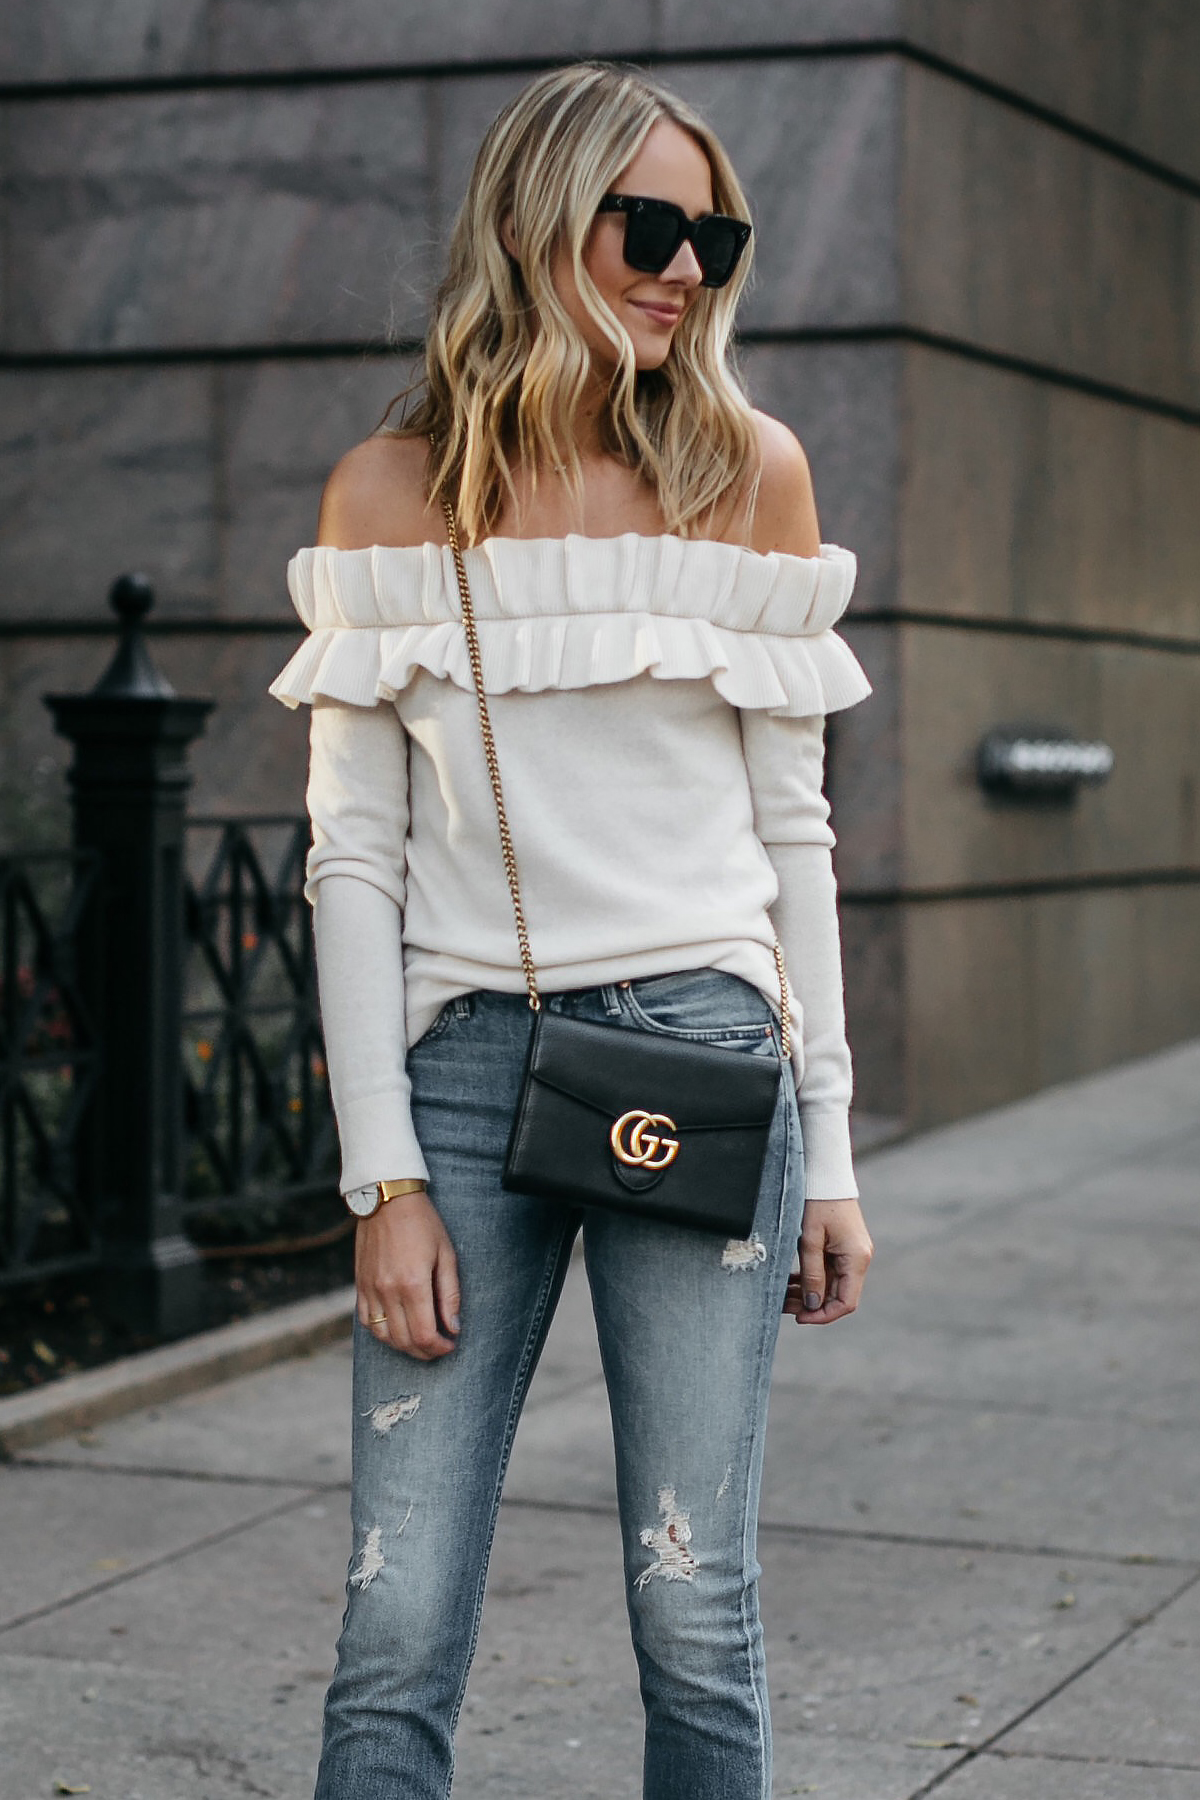 Blonde Woman Wearing Club Monaco Ruffle Off-the-shoulder sweater Mother denim ripped jeans gucci marmont handbag Fashion Jackson Dallas Blogger Fashion Blogger Street Style